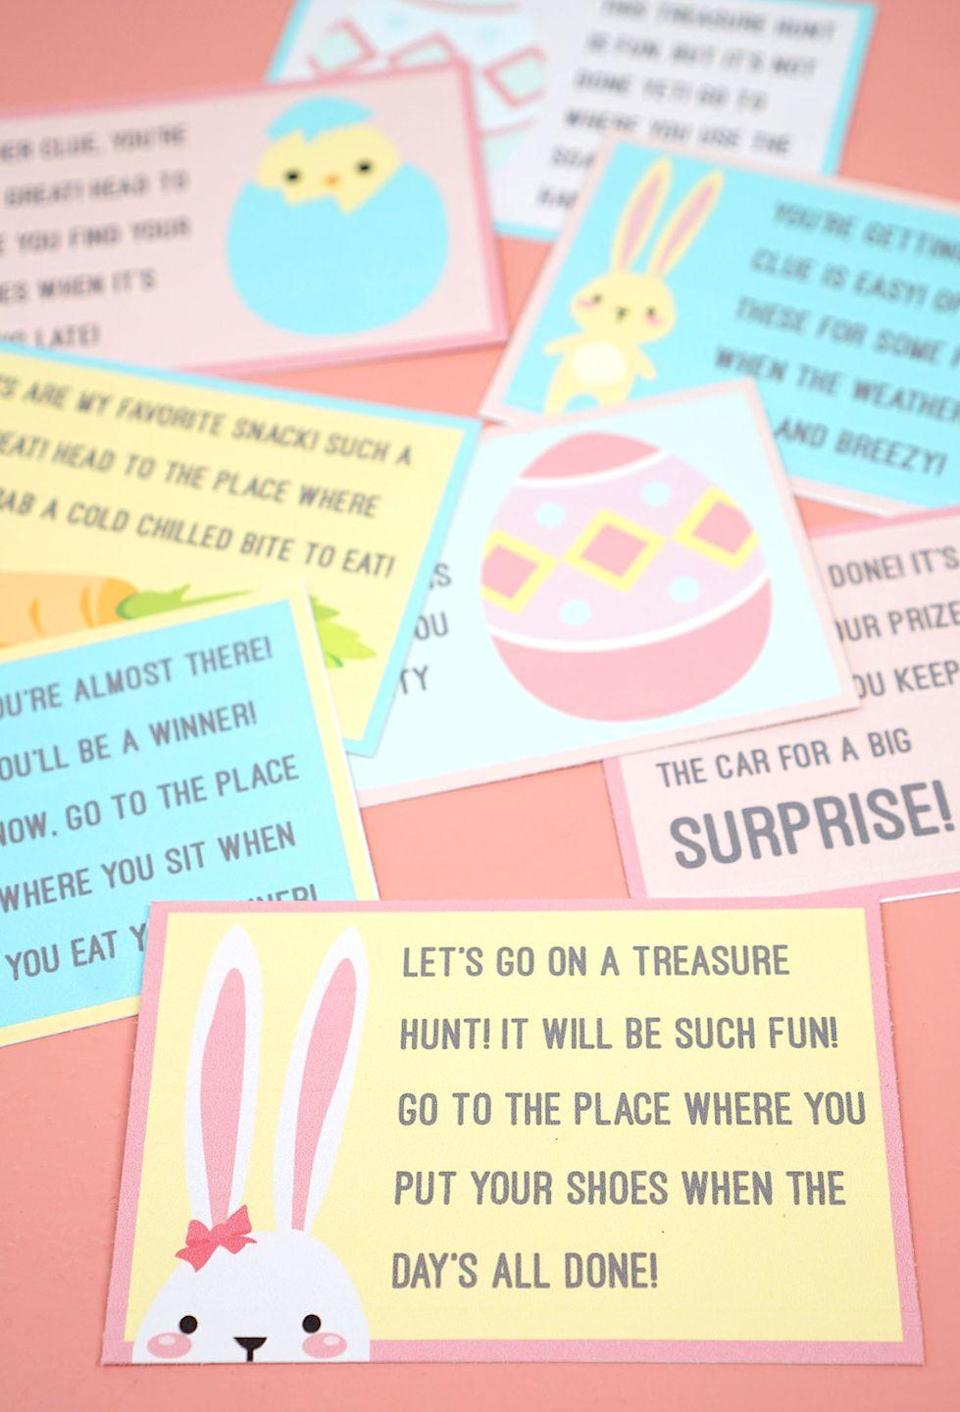 """<p>Lead your kids to their Easter baskets full of candy and eggs with these clever scavenger hunt clues.</p><p><strong>Get the tutorial at <a href=""""https://www.happinessishomemade.net/easter-scavenger-hunt-free-printable/"""" rel=""""nofollow noopener"""" target=""""_blank"""" data-ylk=""""slk:Happiness Is Homemade"""" class=""""link rapid-noclick-resp"""">Happiness Is Homemade</a>.</strong></p><p><strong><strong><strong><a class=""""link rapid-noclick-resp"""" href=""""https://www.amazon.com/Neenah-Cardstock-Heavy-Weight-Brightness-91437/dp/B07D4YF3K4/?tag=syn-yahoo-20&ascsubtag=%5Bartid%7C10050.g.4083%5Bsrc%7Cyahoo-us"""" rel=""""nofollow noopener"""" target=""""_blank"""" data-ylk=""""slk:SHOP CARD STOCK"""">SHOP CARD STOCK</a></strong></strong><br></strong></p>"""